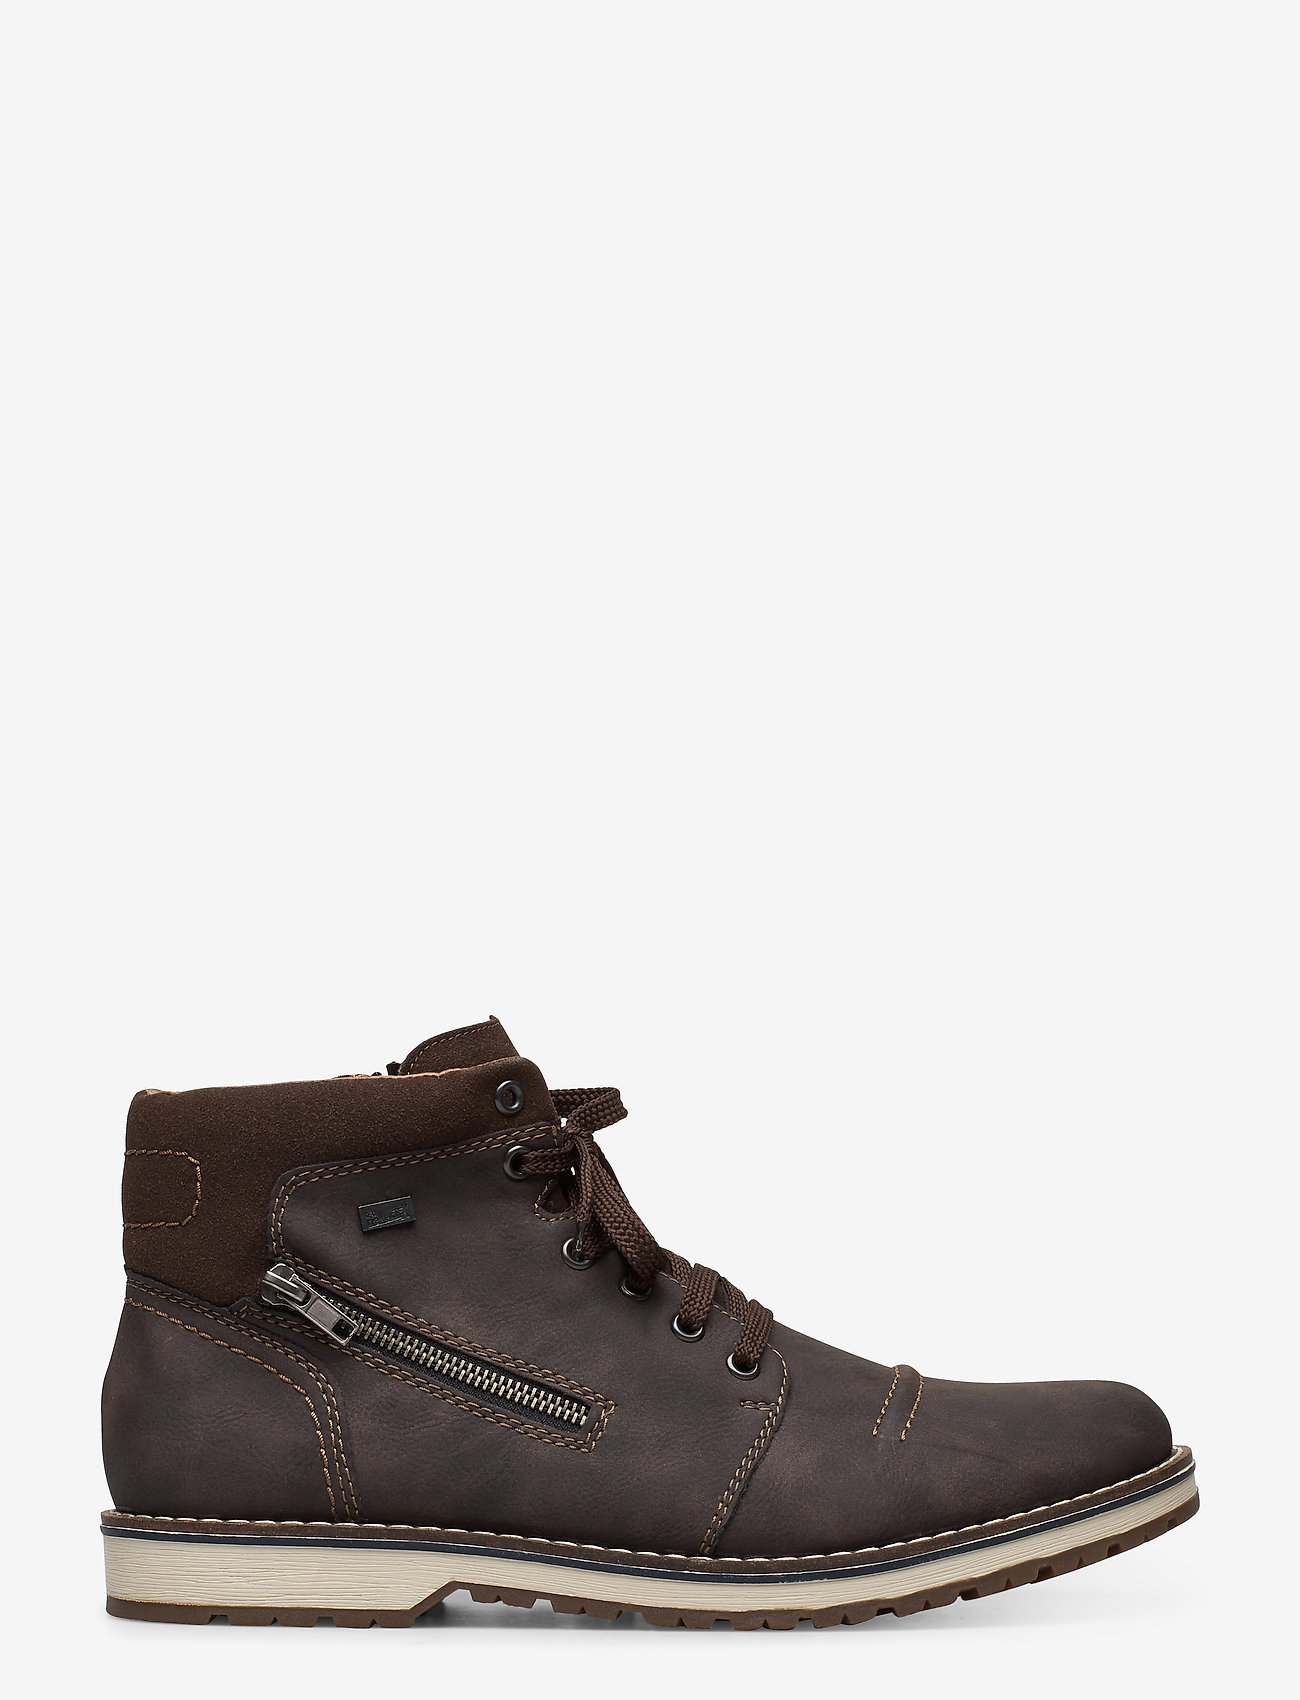 Rieker - 39231-26 - winterlaarzen - brown - 1